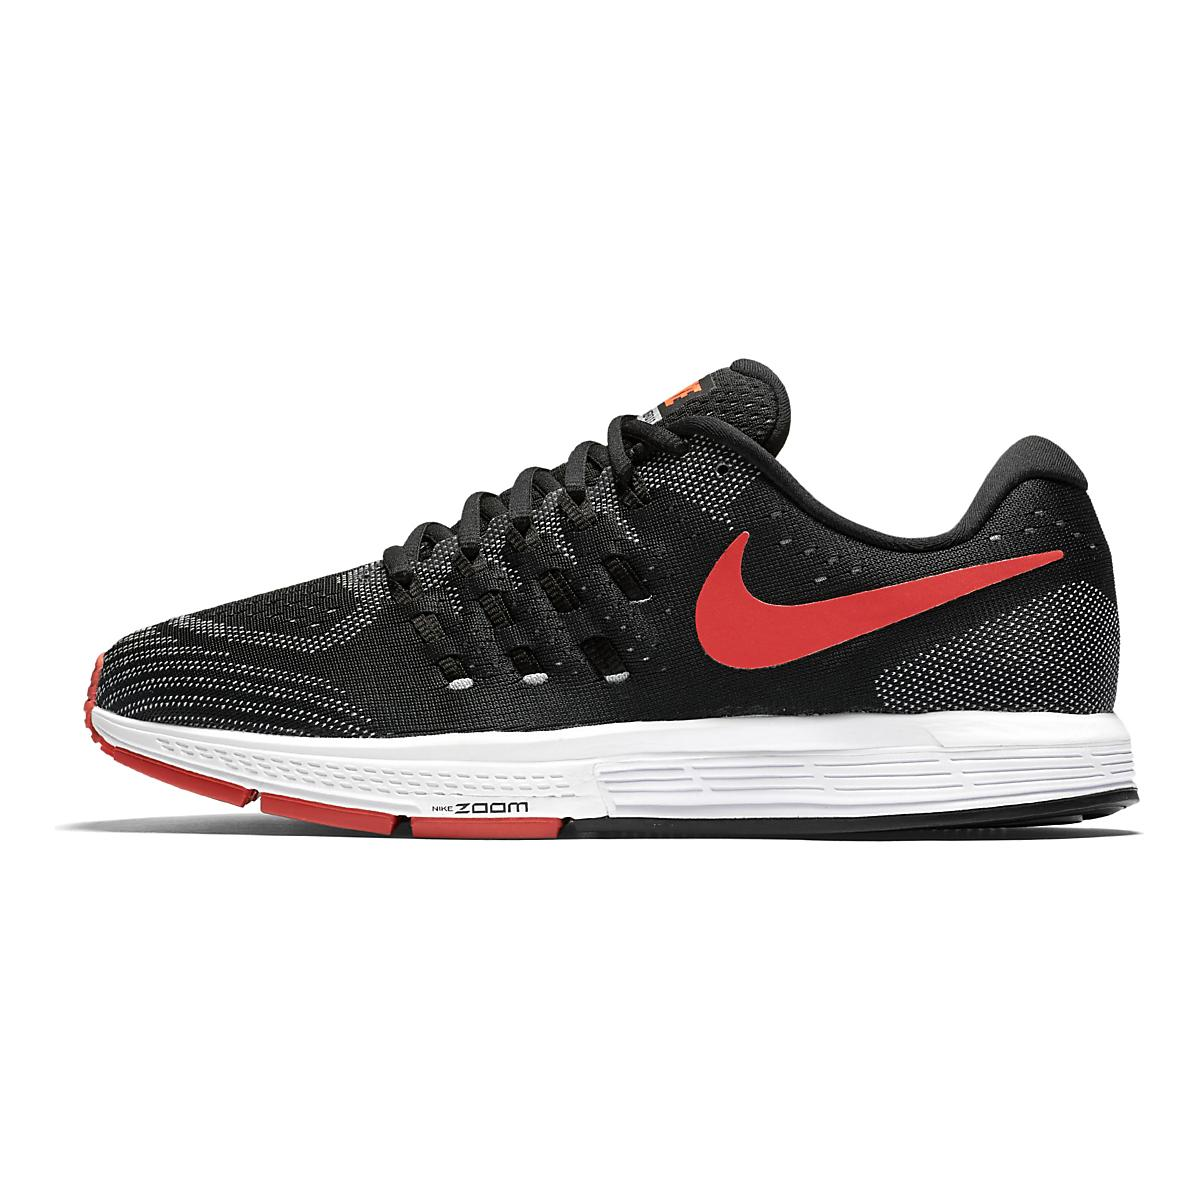 Men's Nike�Air Zoom Vomero 11